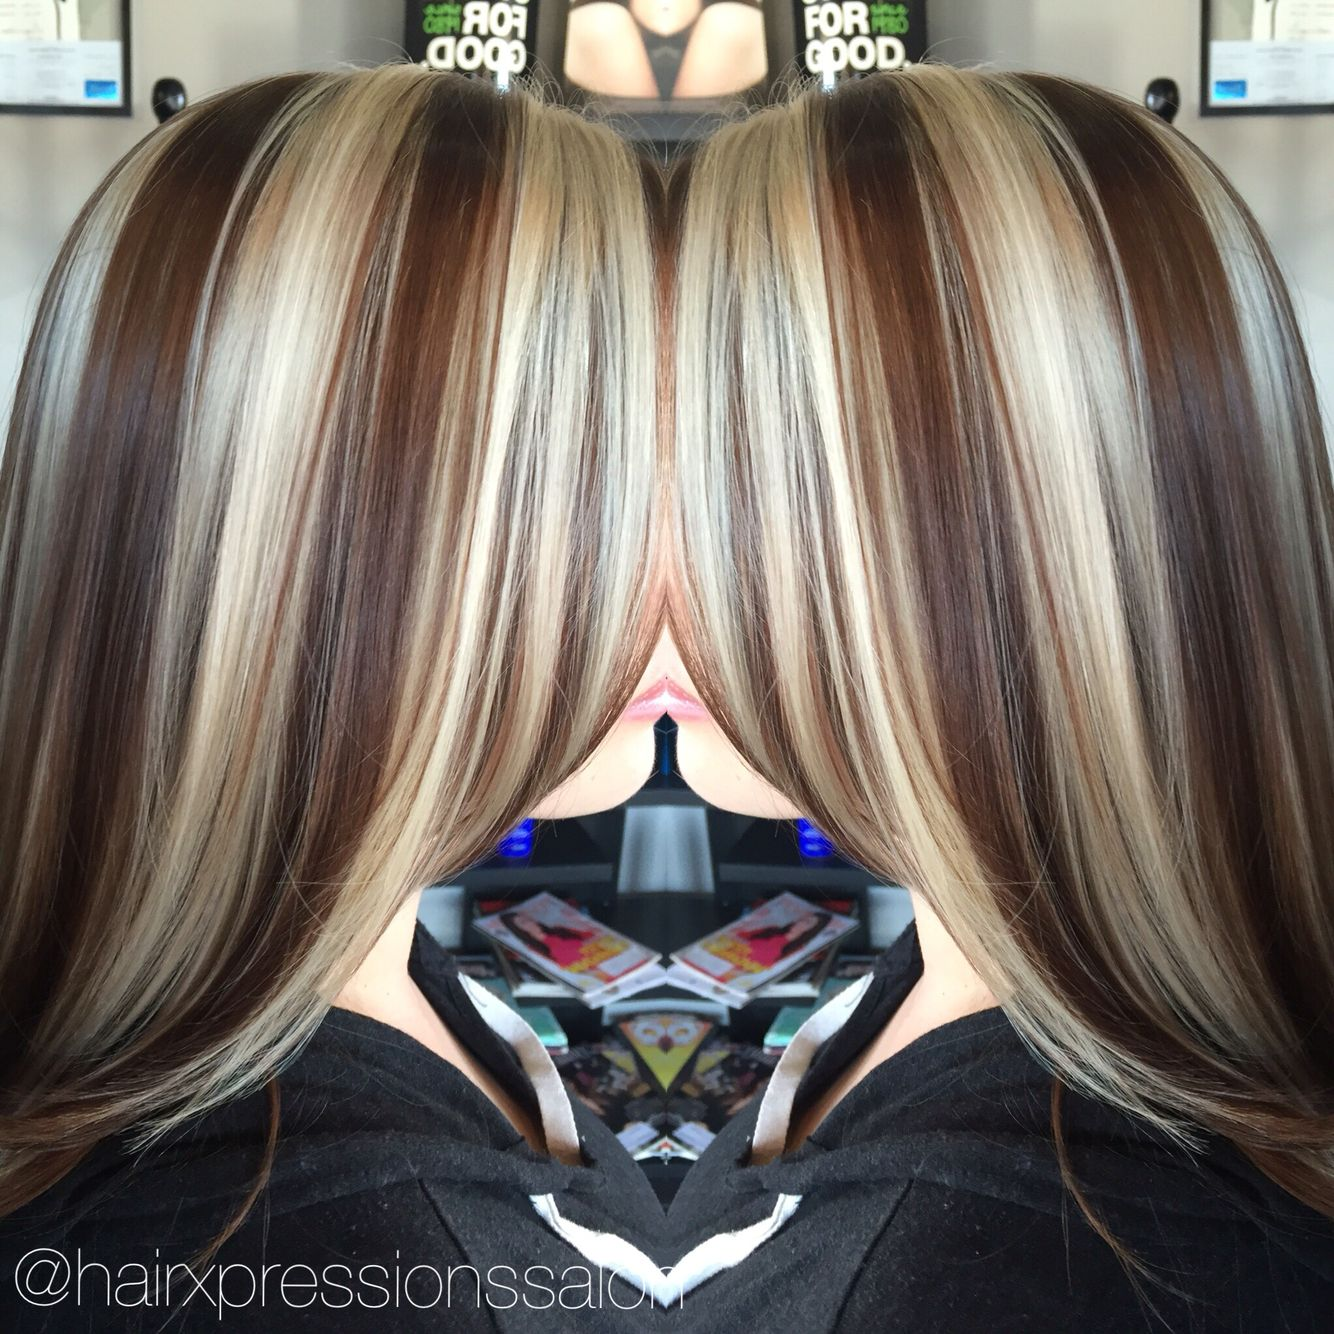 Hairxpressionssalonlv Chunky Highlightsgolden Brown Base Hair